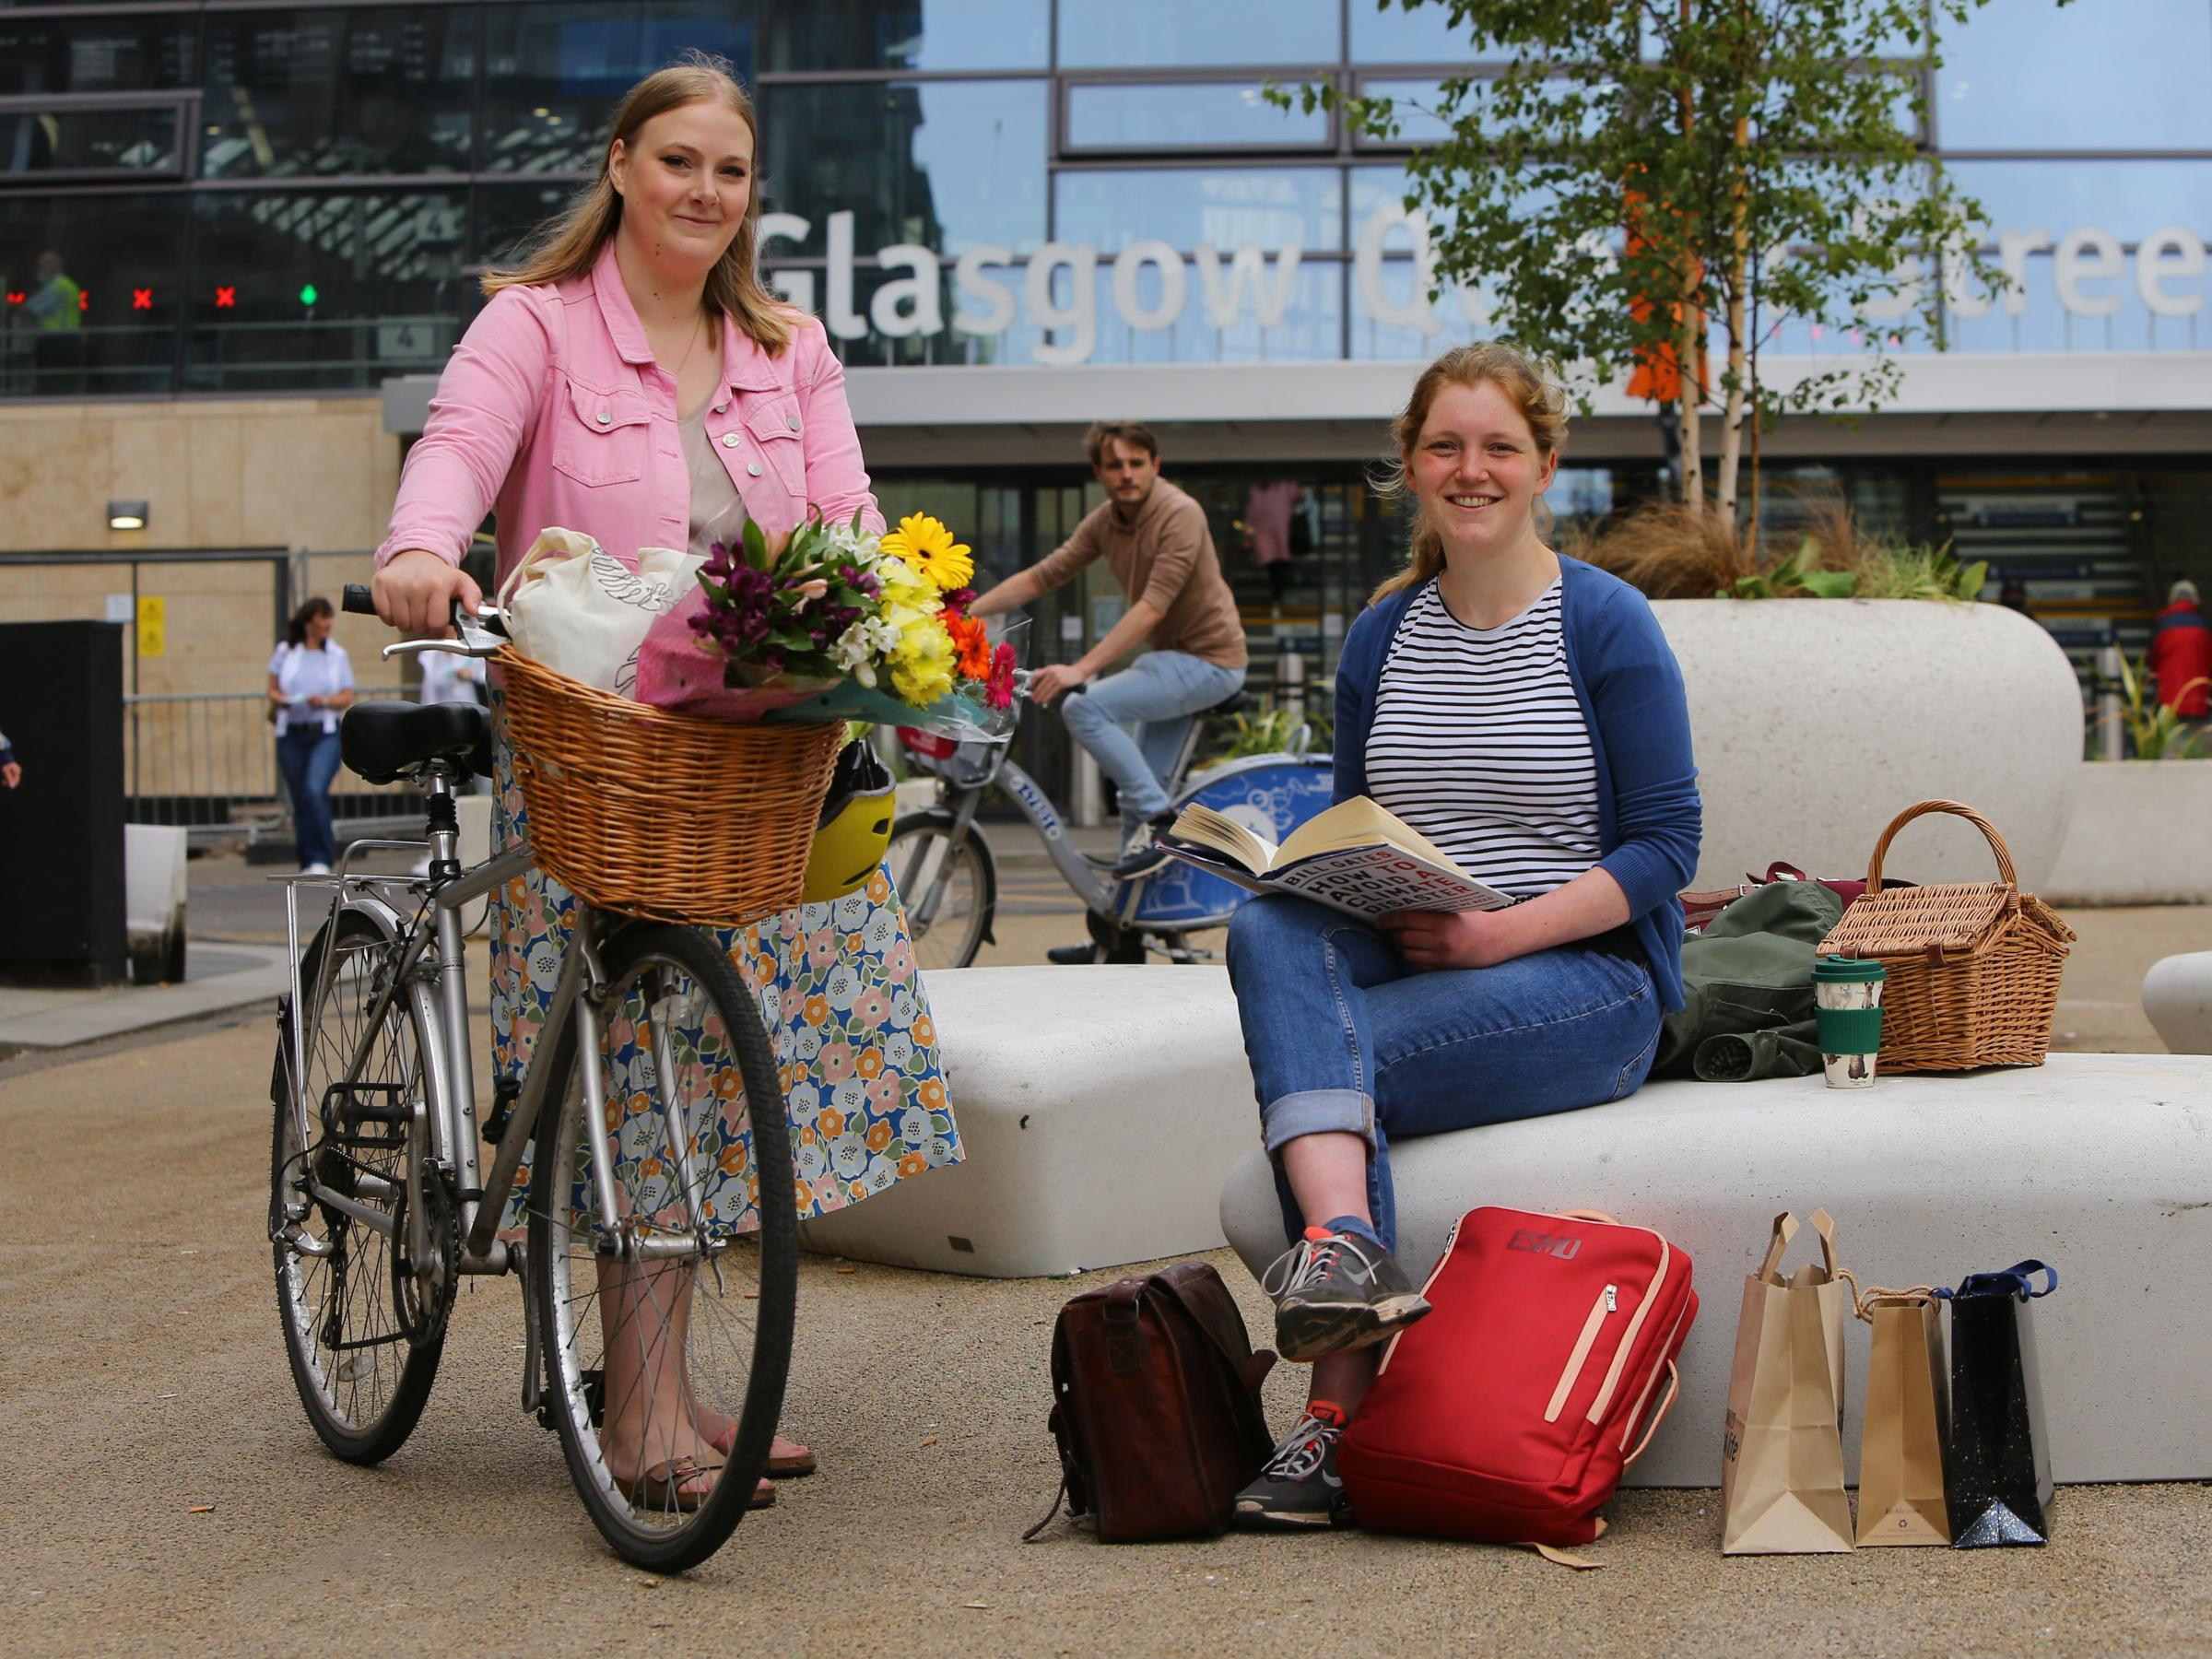 Transform Scotland launches sustainability report recommending 'car-free cuty centre'